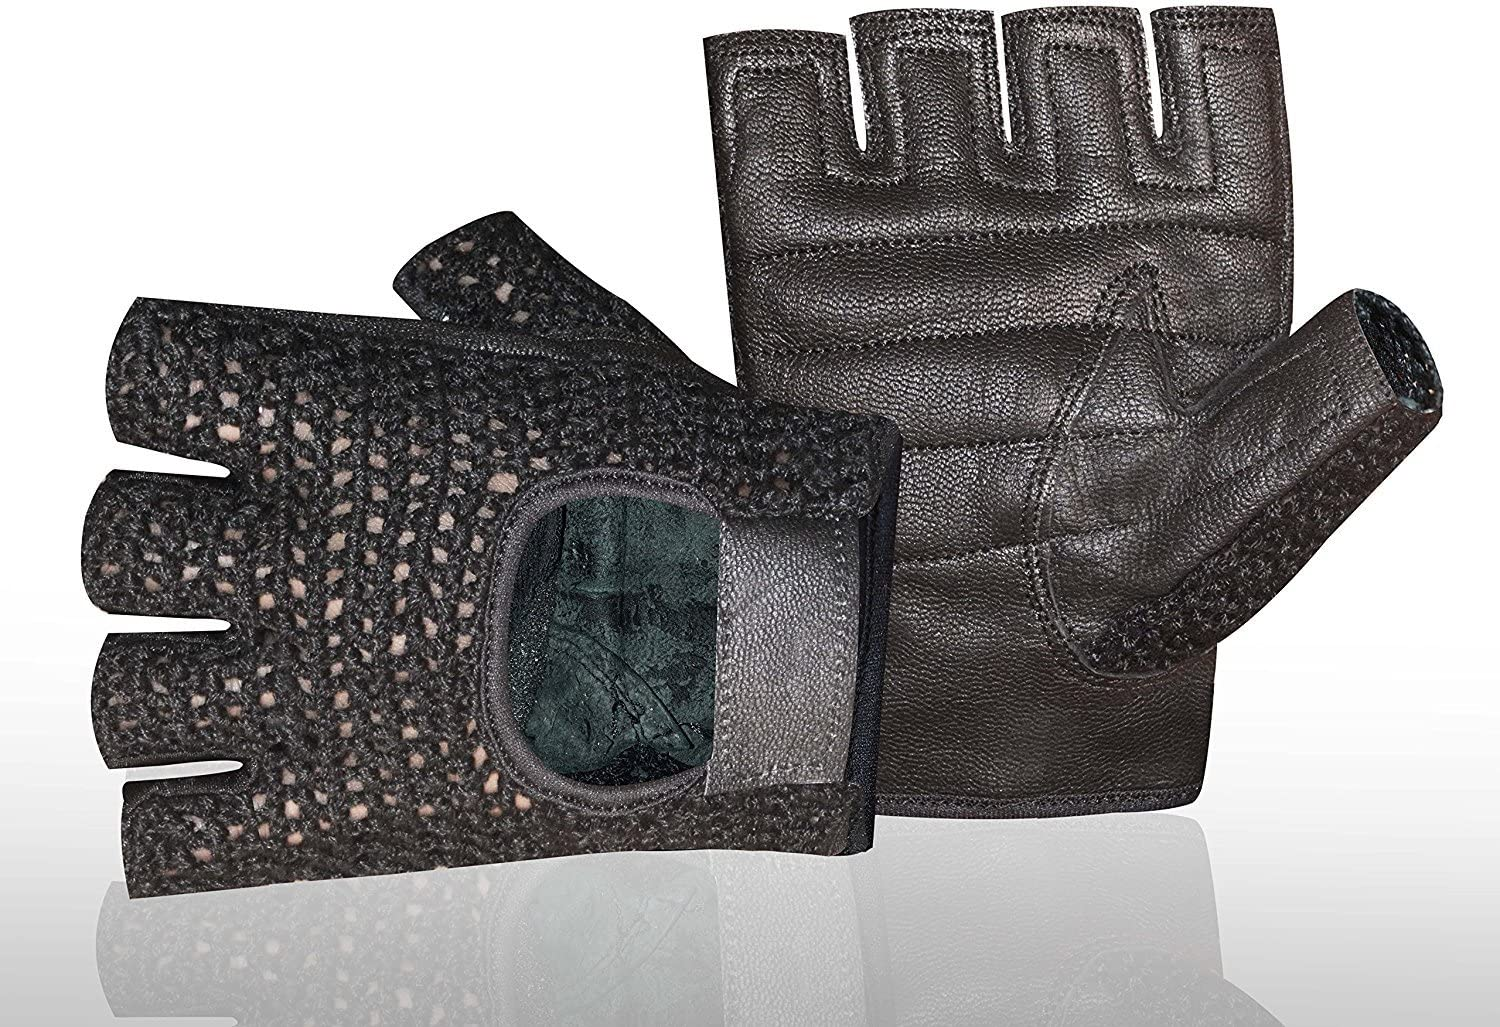 GYM-WEIGHT-TRAINING-FITNESS-POWER-LIFTING-CYCLING-WHEELCHAI MESH-LEATHER-GLOVES